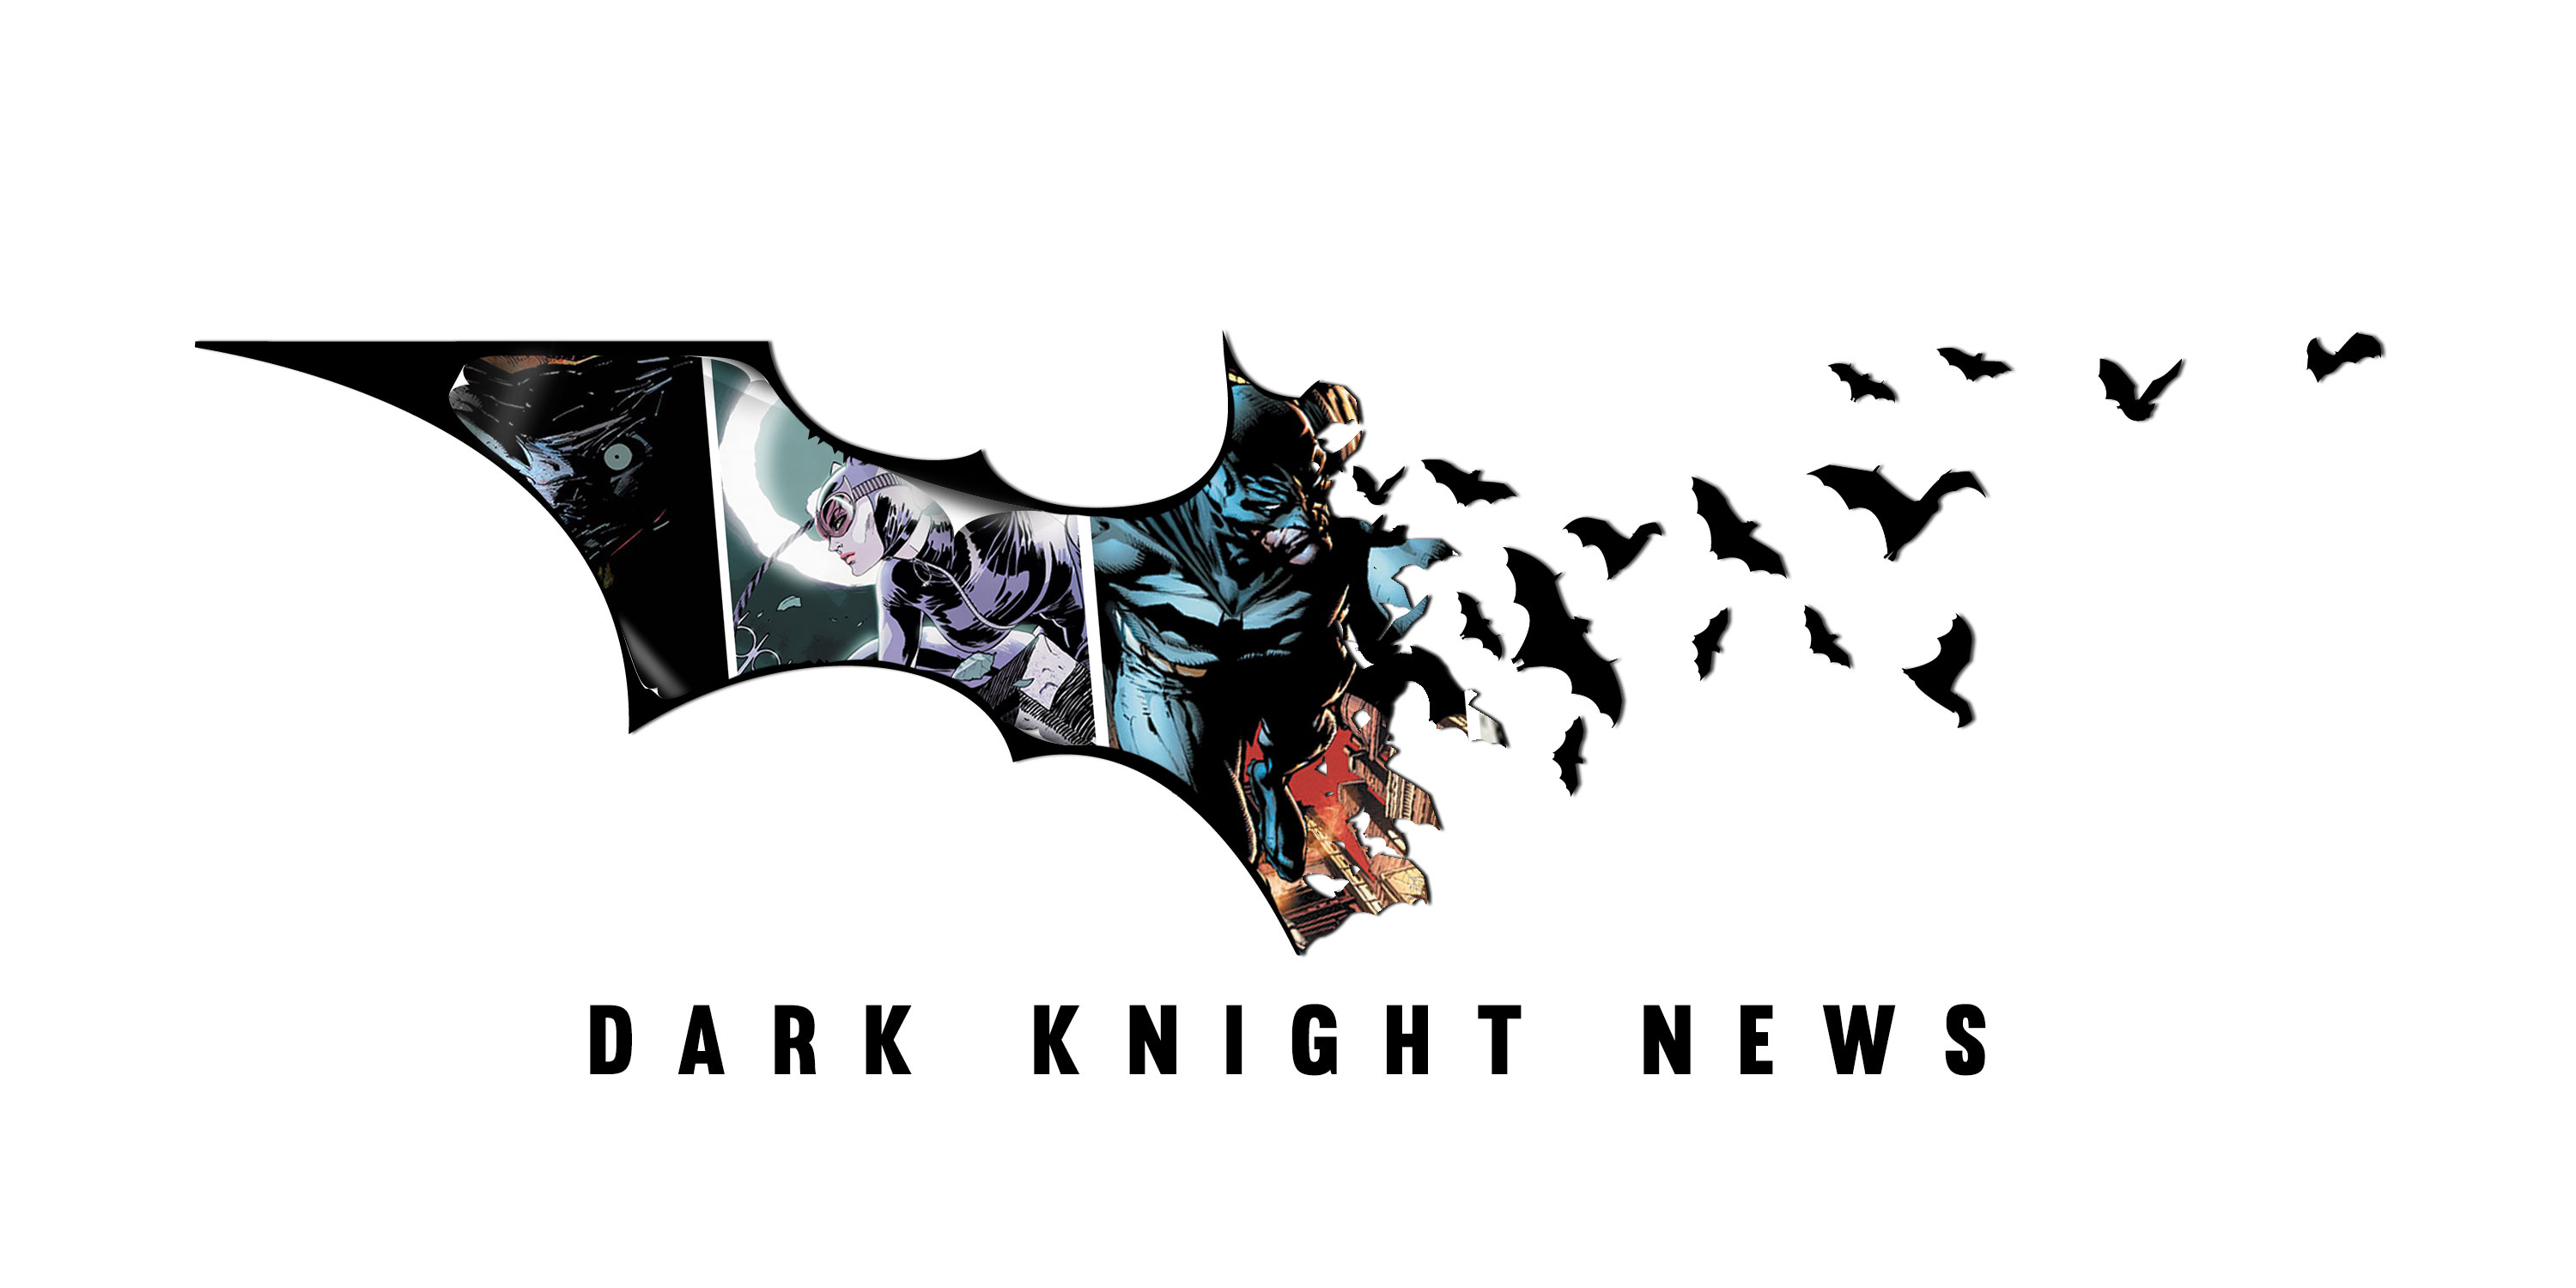 Dark Knight News